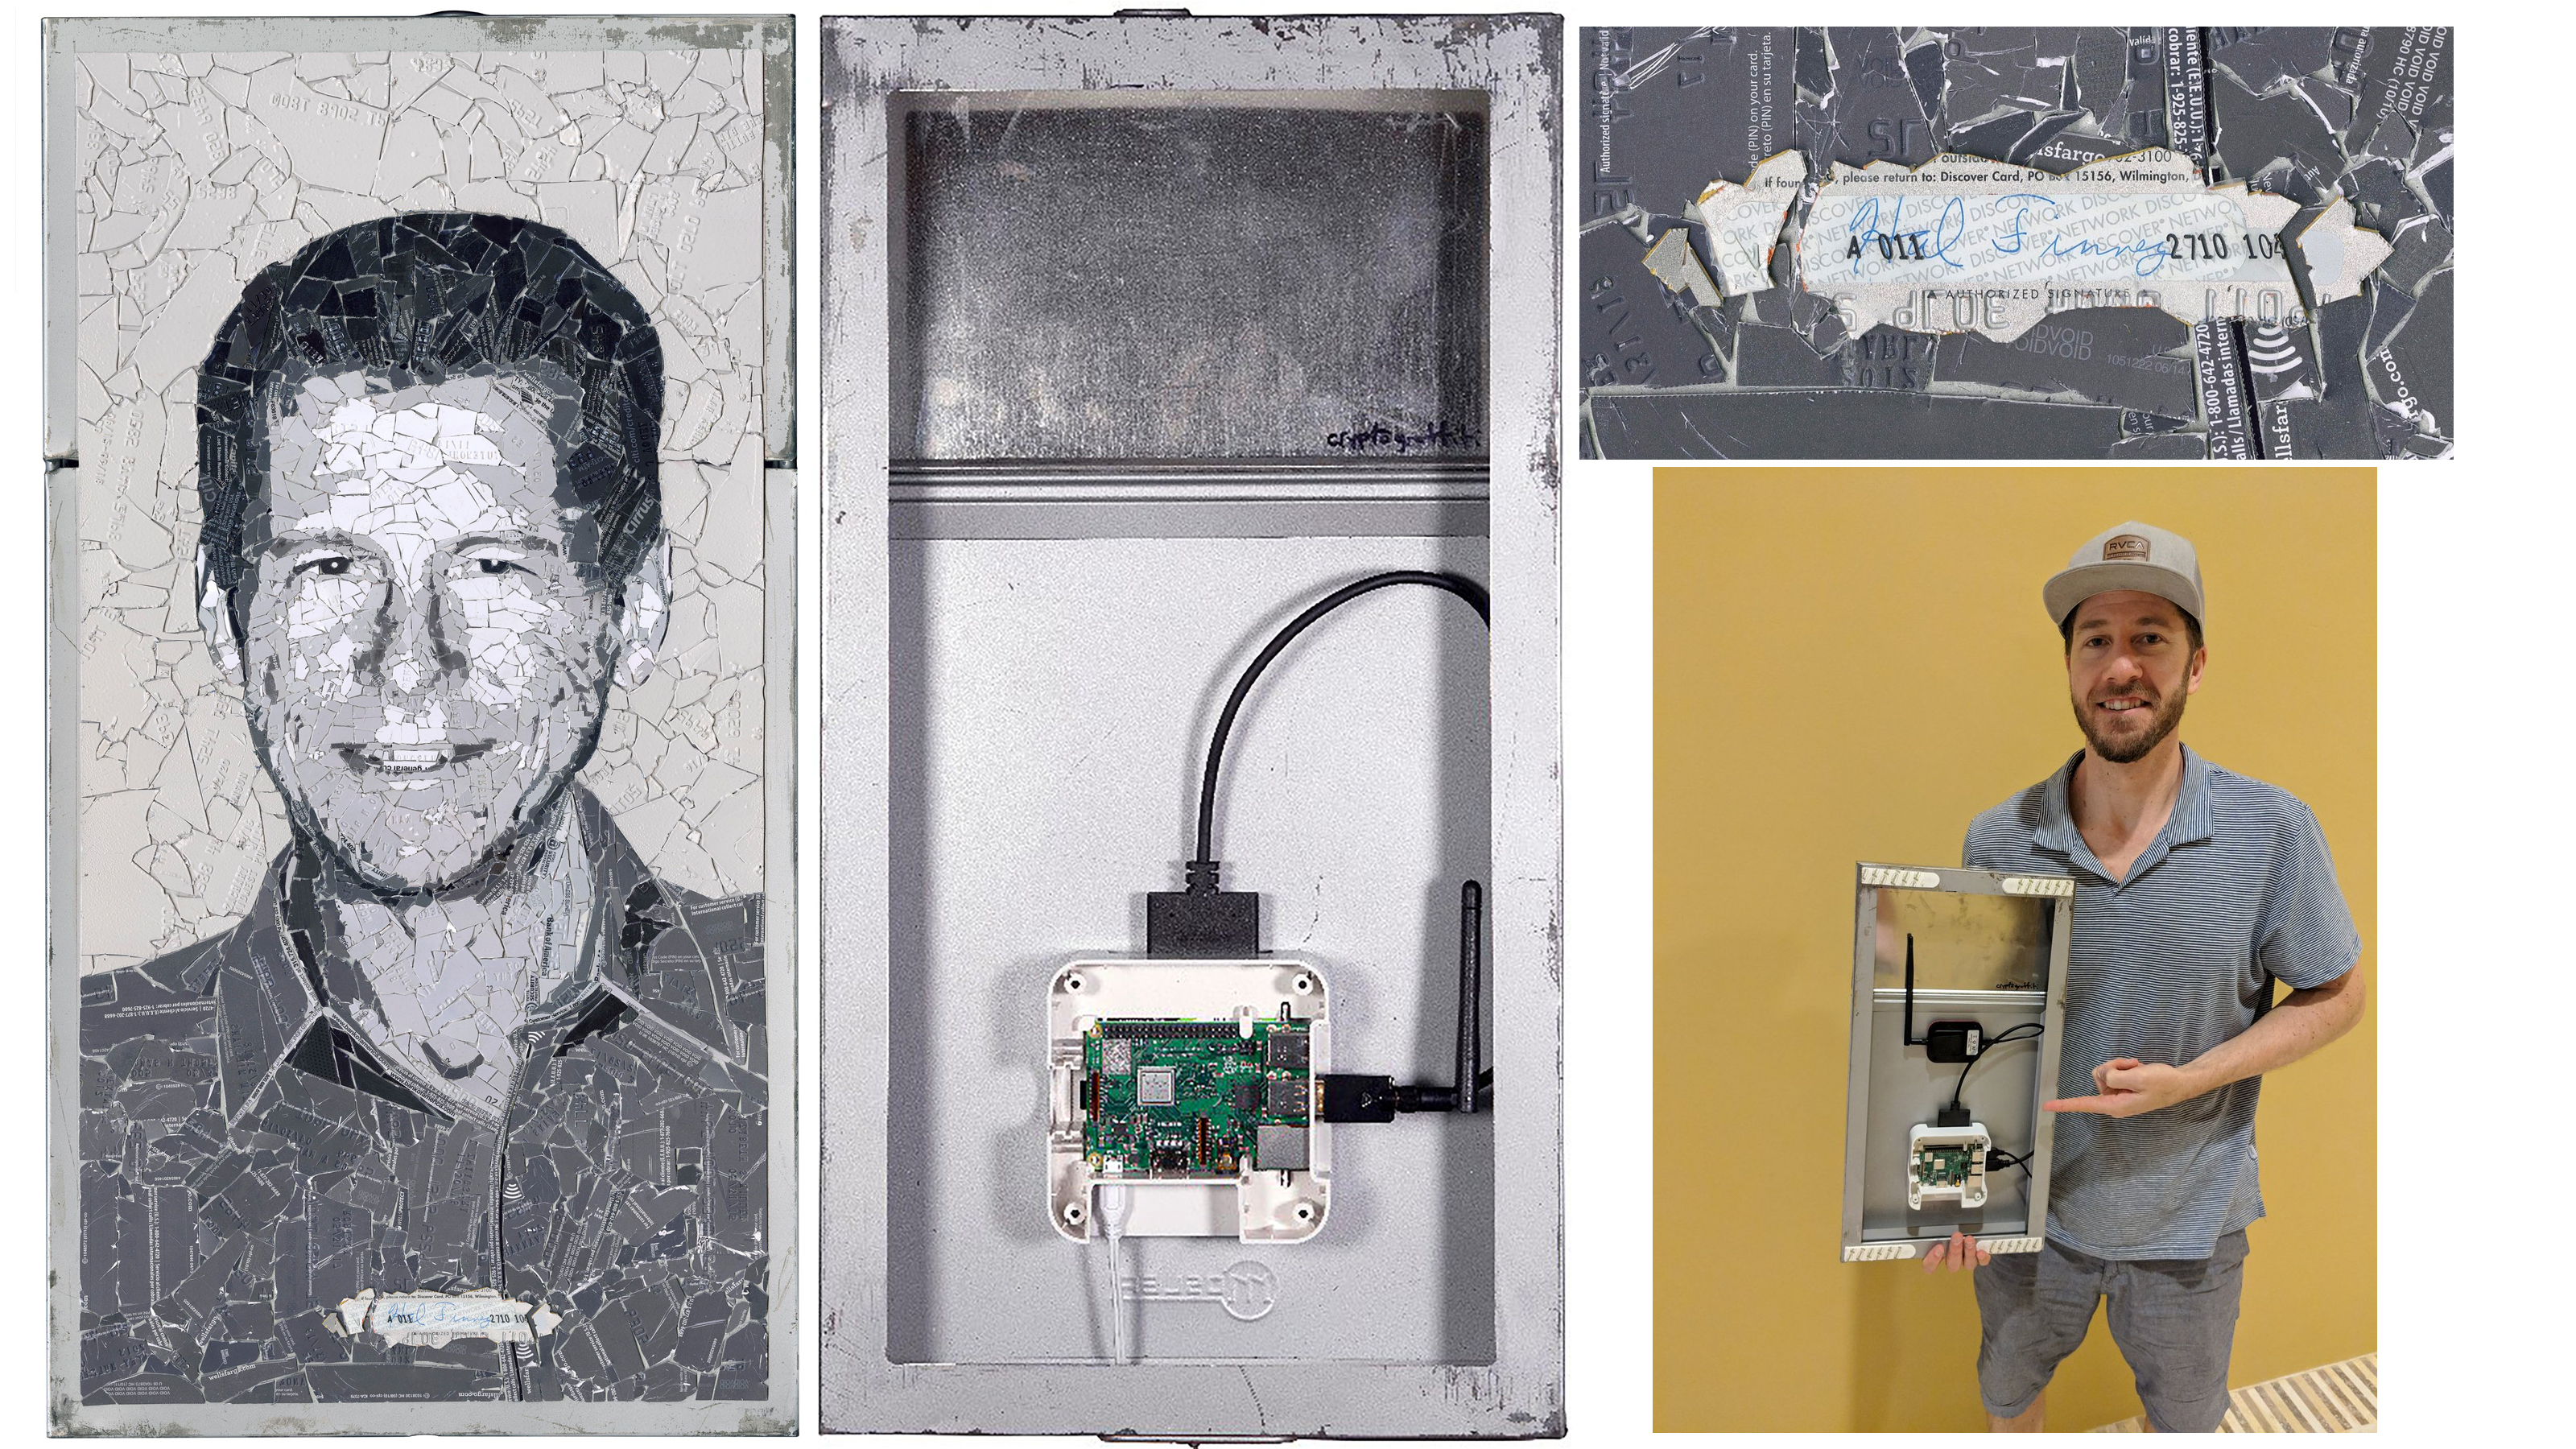 Cryptograffiti's Latest 'Running Bitcoin' Portrait Sees Auction Bids of Over $ 30K